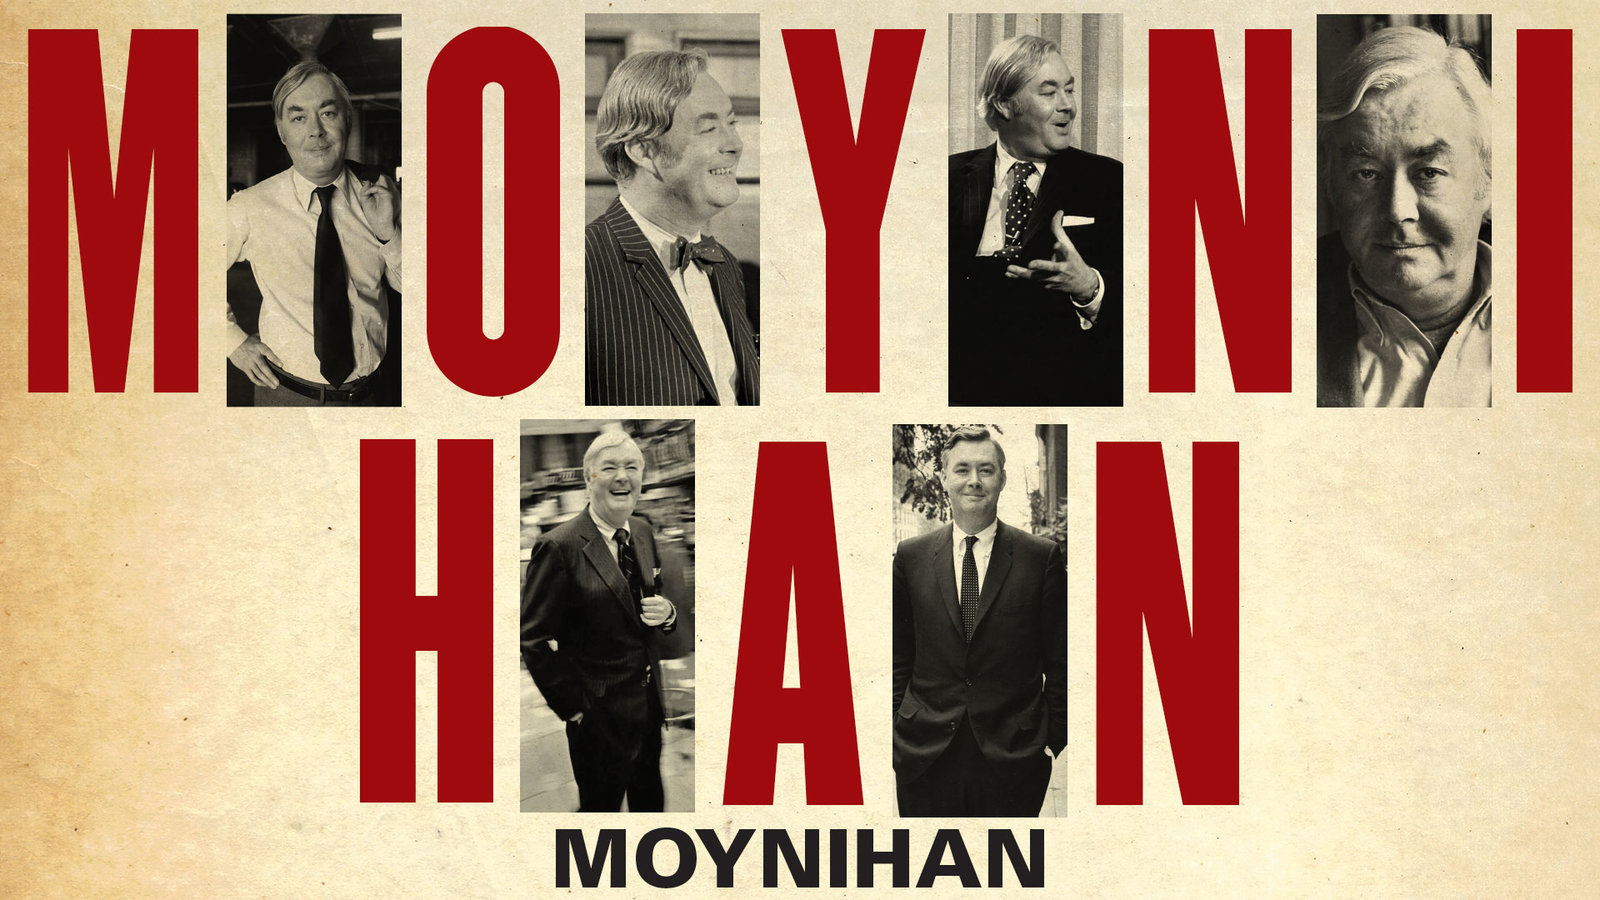 Moynihan - The Life and Political Career of a U.S. Senator